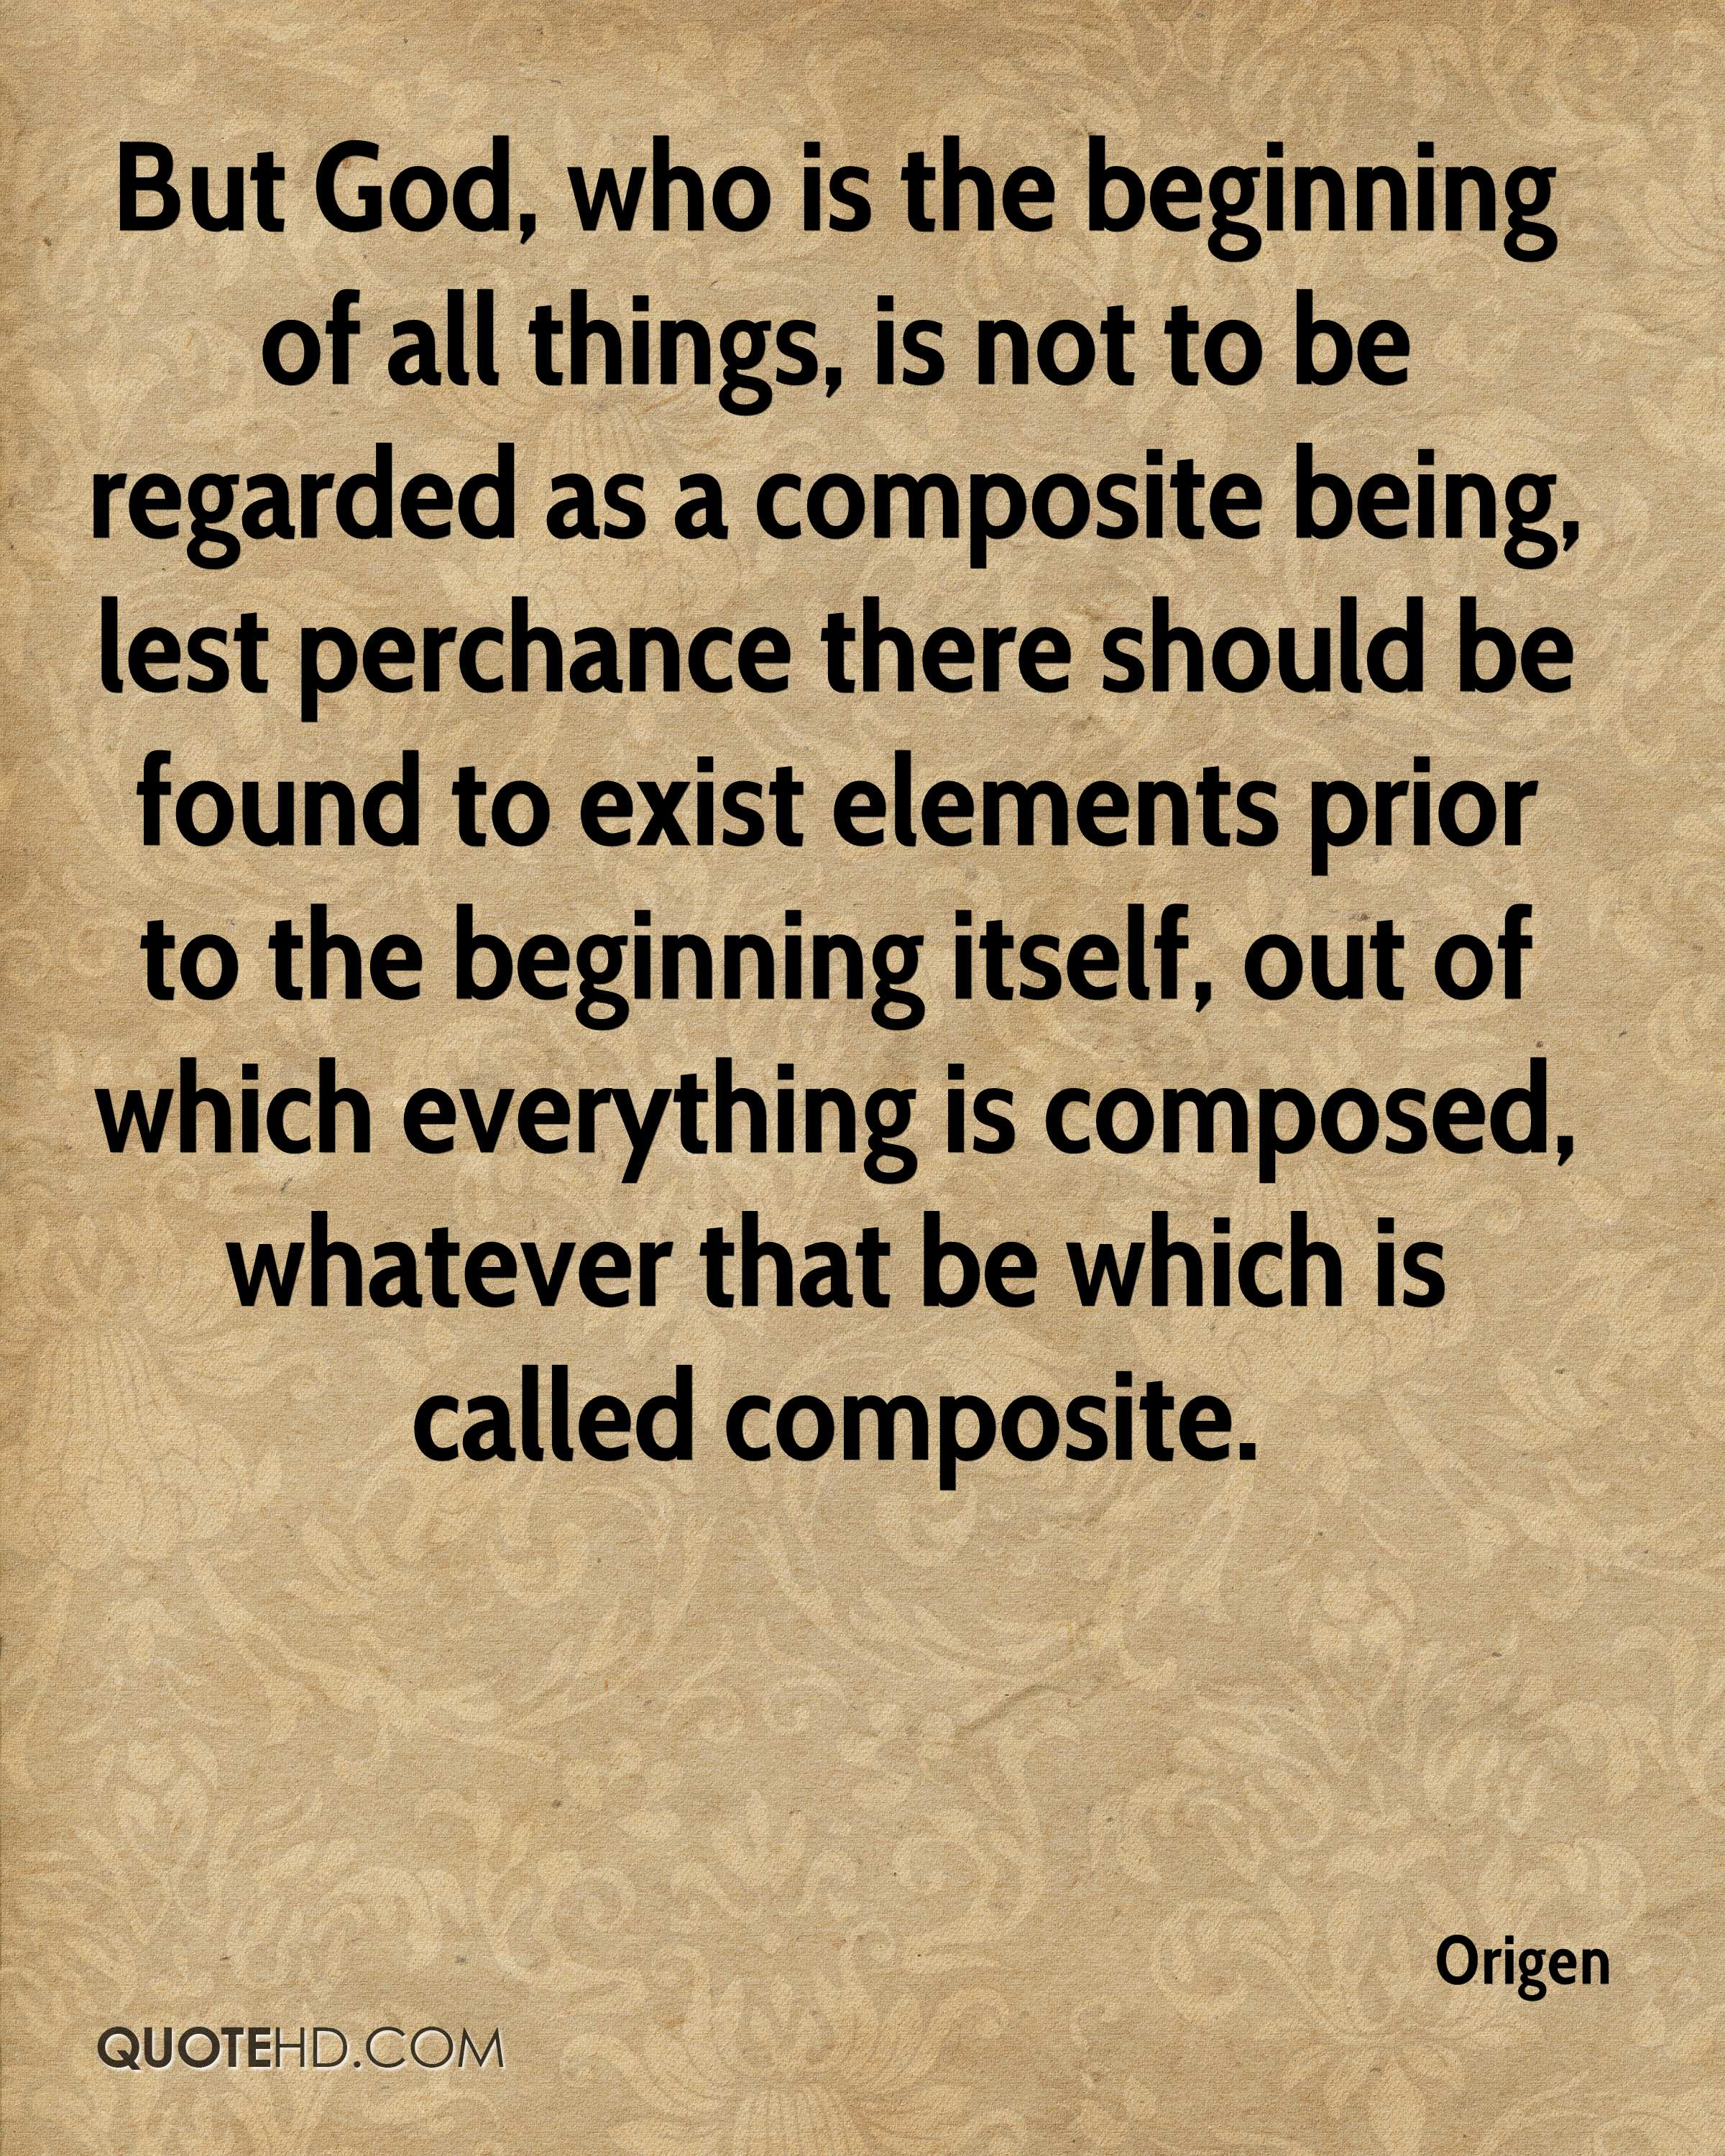 But God, who is the beginning of all things, is not to be regarded as a composite being, lest perchance there should be found to exist elements prior to the beginning itself, out of which everything is composed, whatever that be which is called composite.